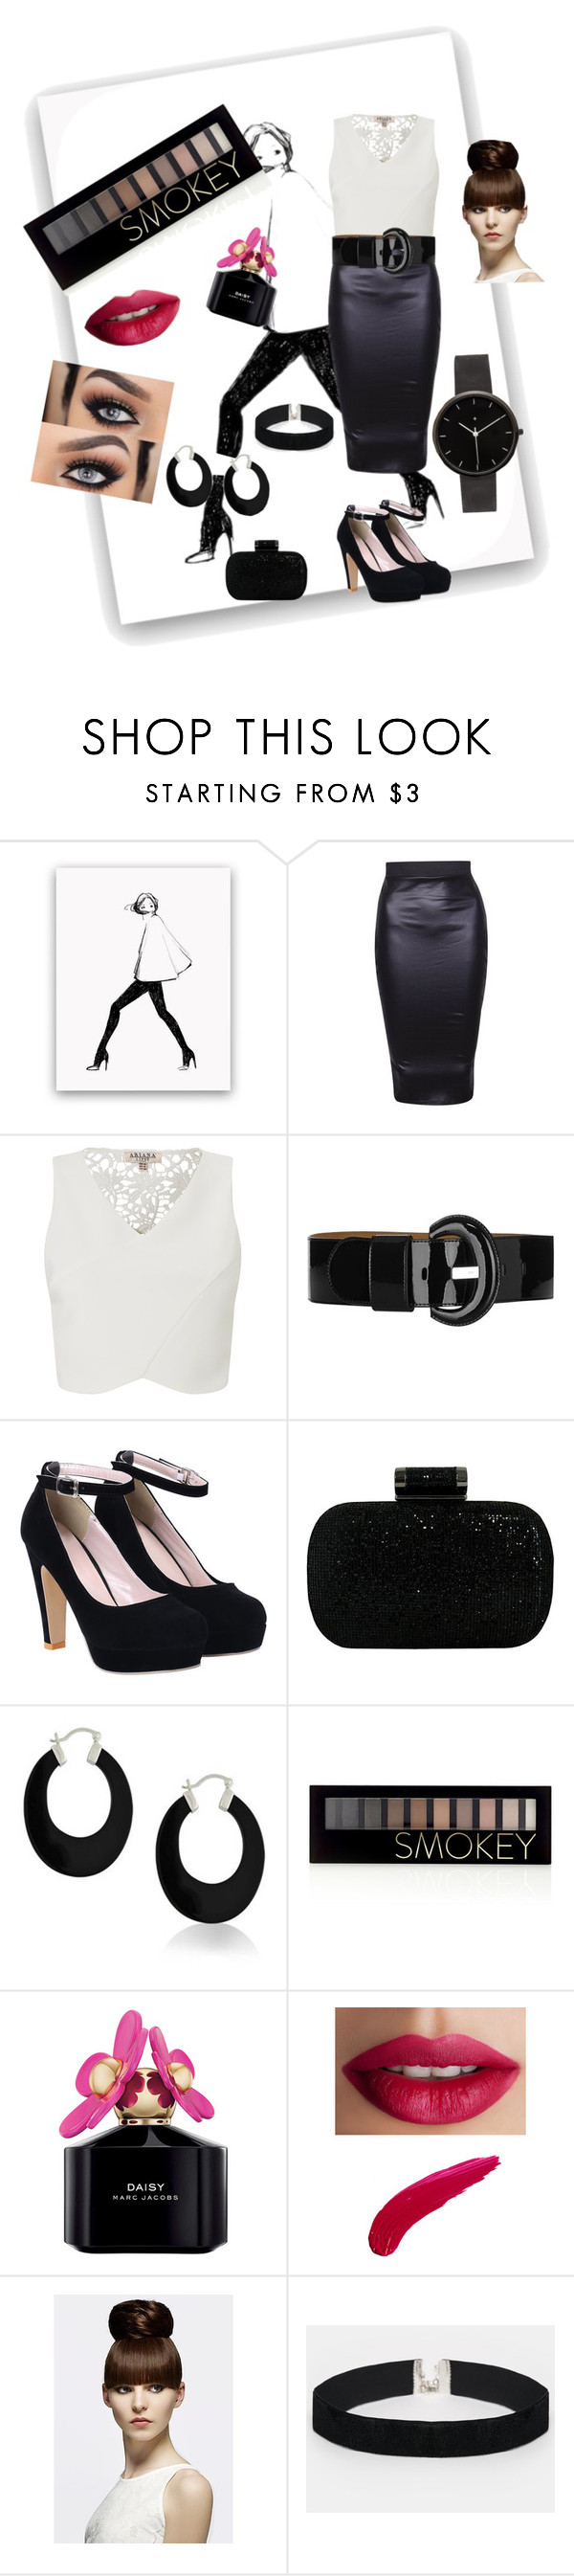 """""""Monochrome Beauty"""" by alexia98fanfan ❤ liked on Polyvore featuring Lipsy, Karen Millen, JNB, Bling Jewelry, Forever 21, Marc Jacobs, TheBalm, ASOS and I Love Ugly"""